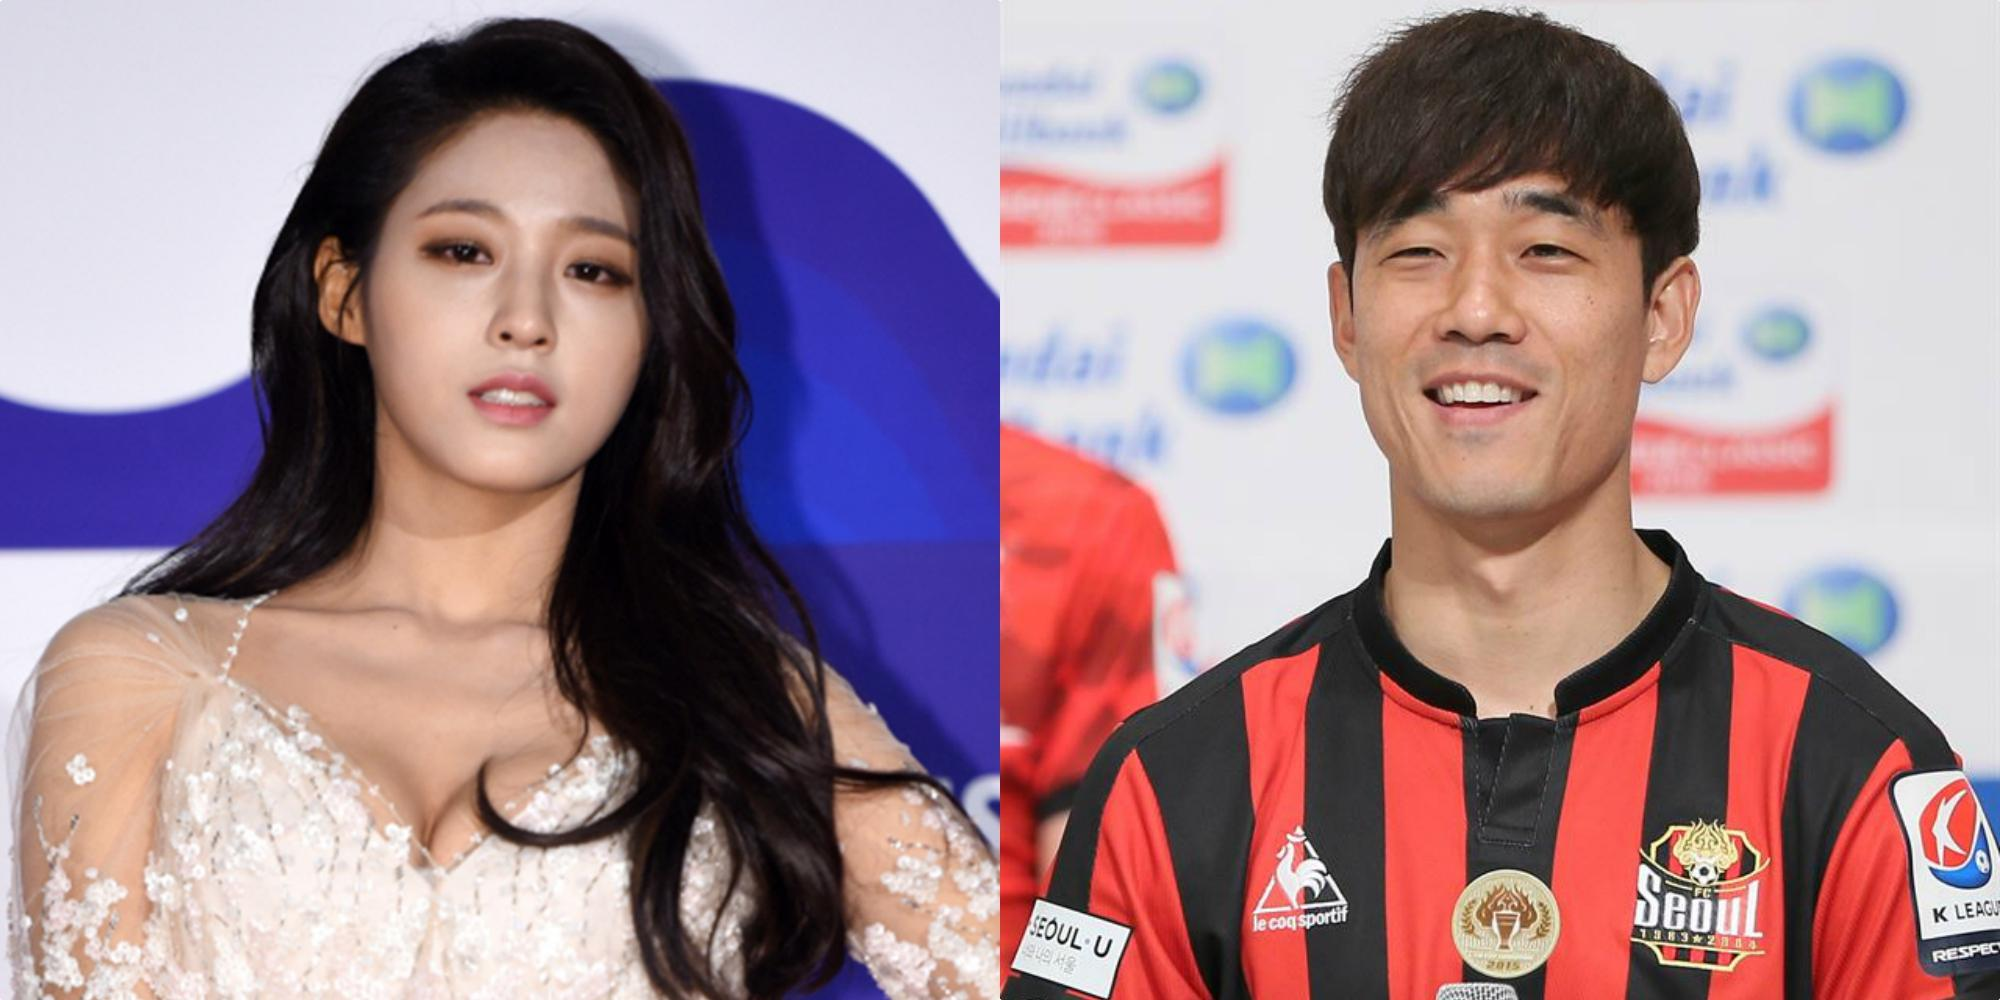 Monaco royalty reveals hes a fan of AOA Seolhyun and Park Chu Young